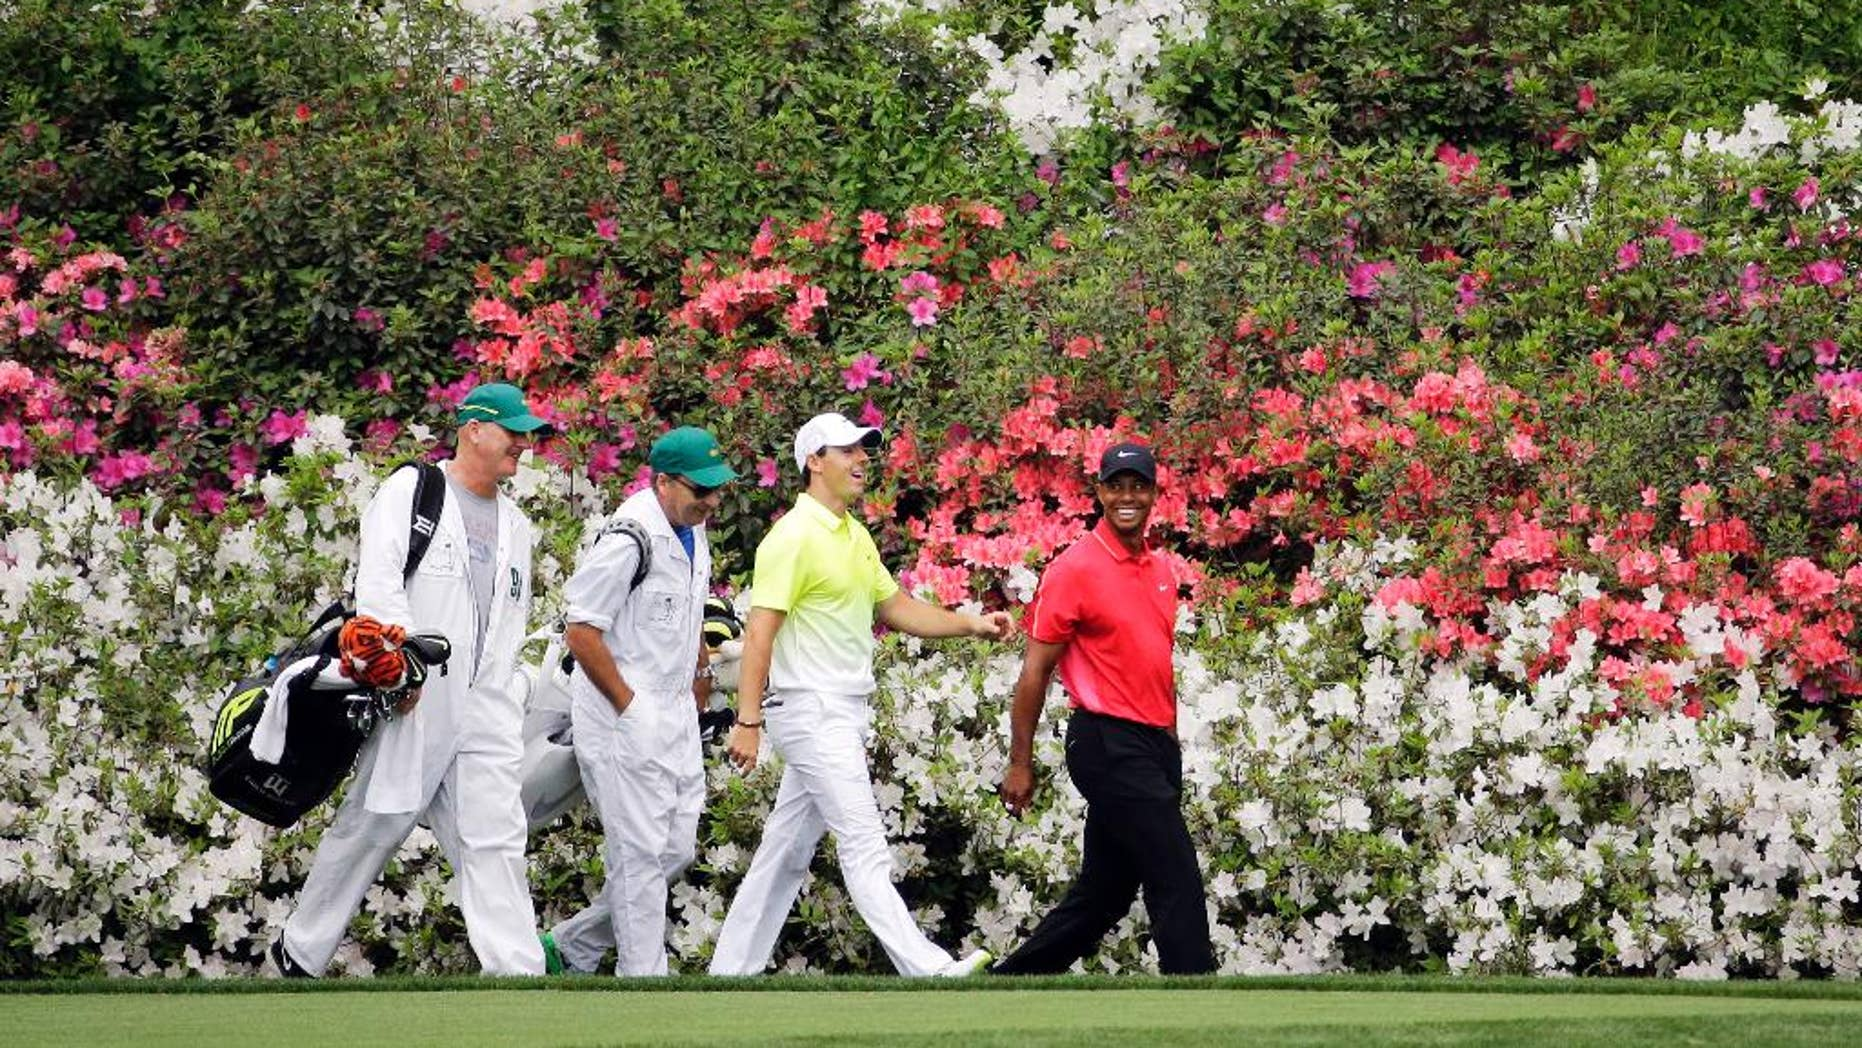 Tiger Woods, right, walks with Rory McIlroy, of Northern Ireland, and their caddies along the 13th fairway during the fourth round of the Masters golf tournament Sunday, April 12, 2015, in Augusta, Ga. (AP Photo/Matt Slocum)